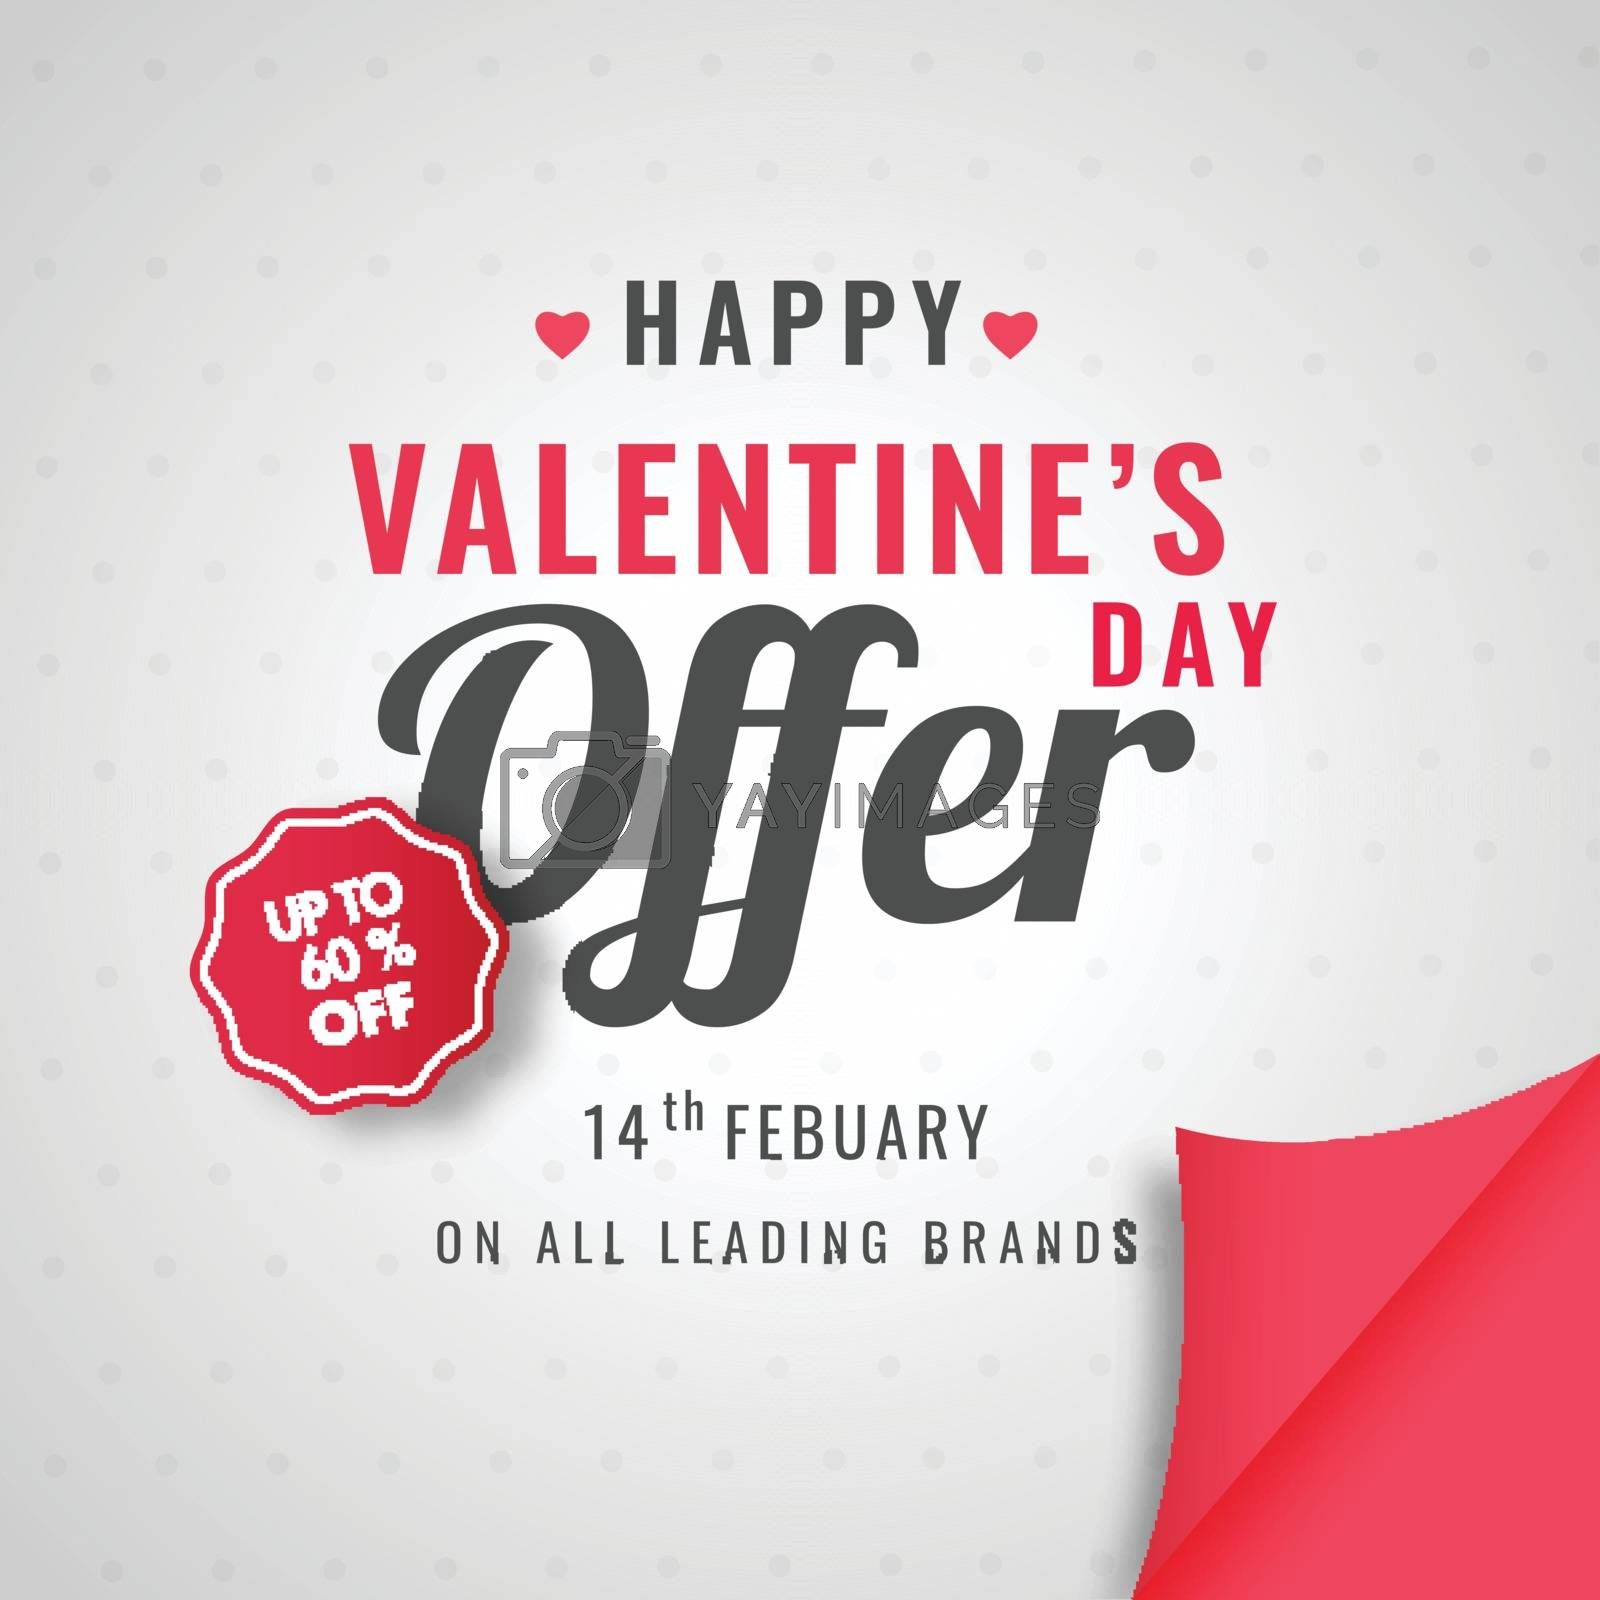 Poster or template design upto 60% discount offer for Happy Vale by aispl